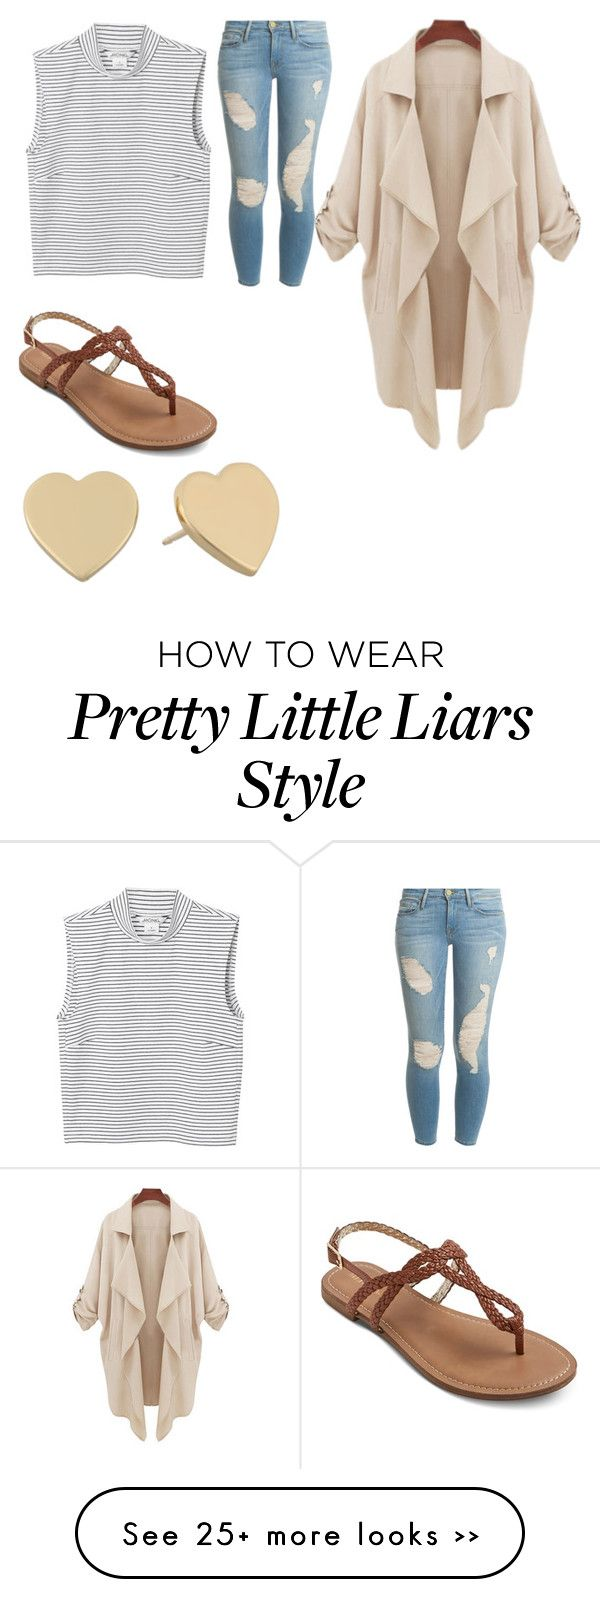 """Pretty Little Liars inspired"" by chloethegreat on Polyvore"